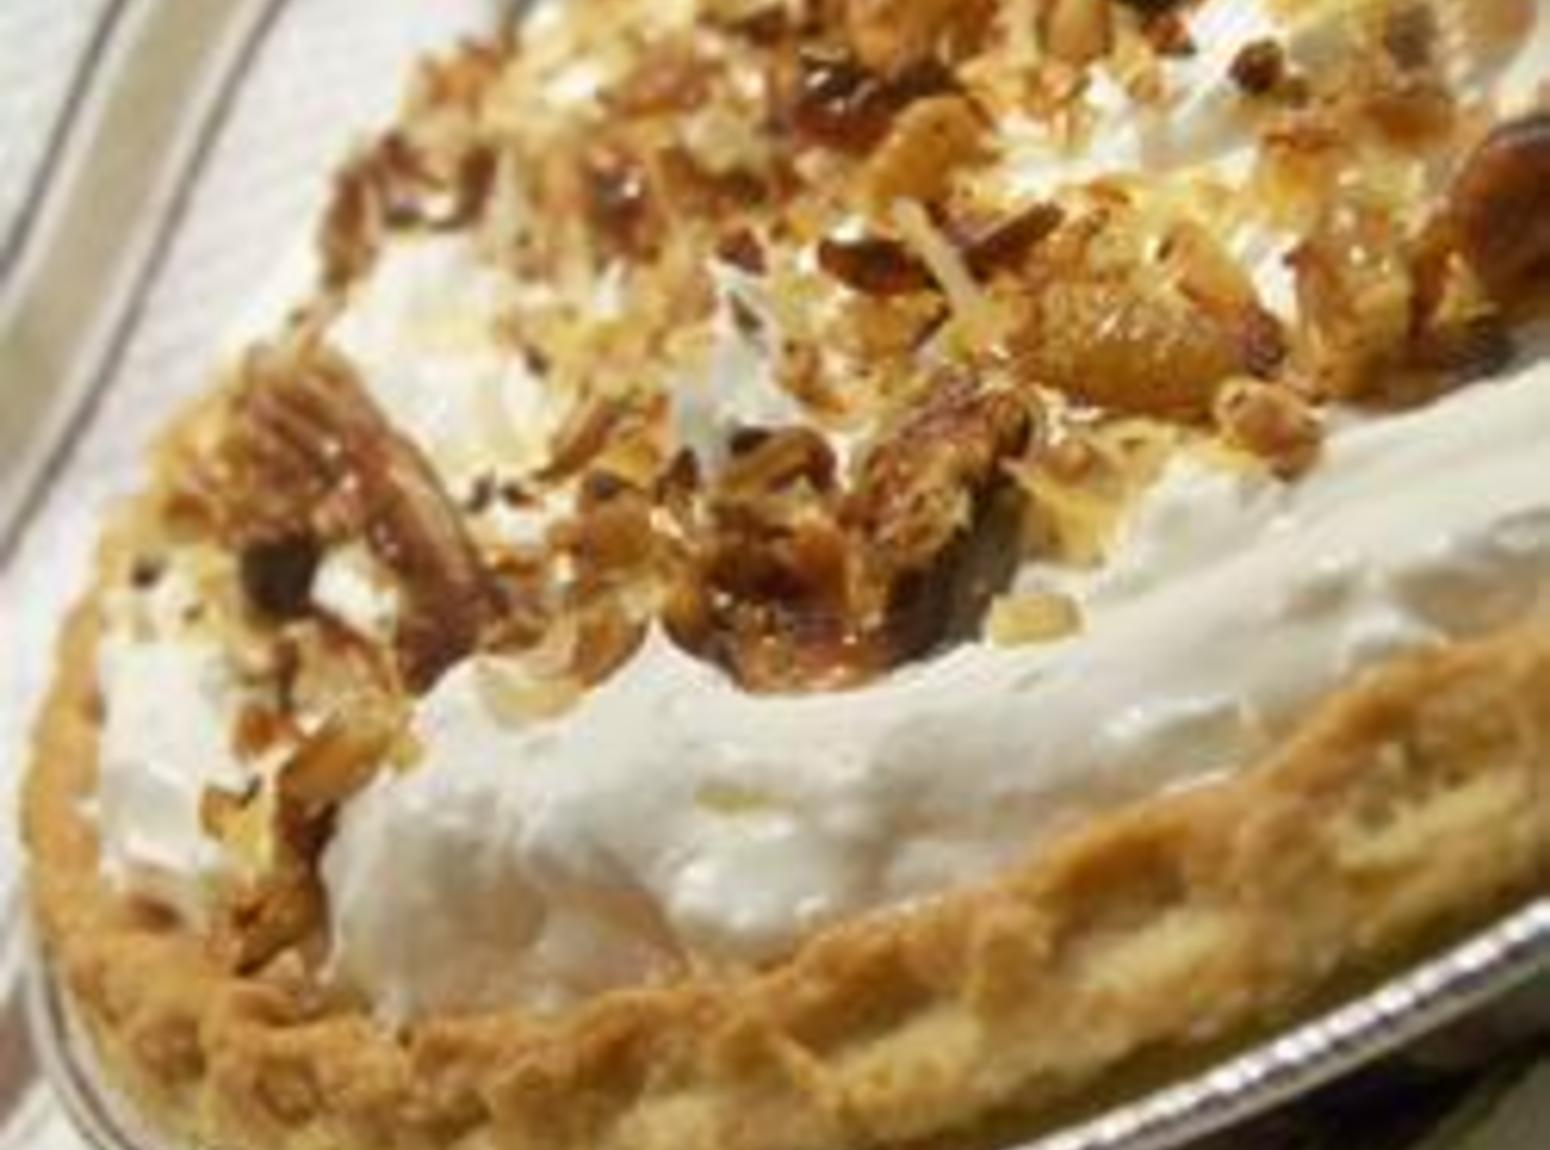 Toasted coconut pecan chocolate and caramel pie recipe for Chocolate coconut pecan pie recipe